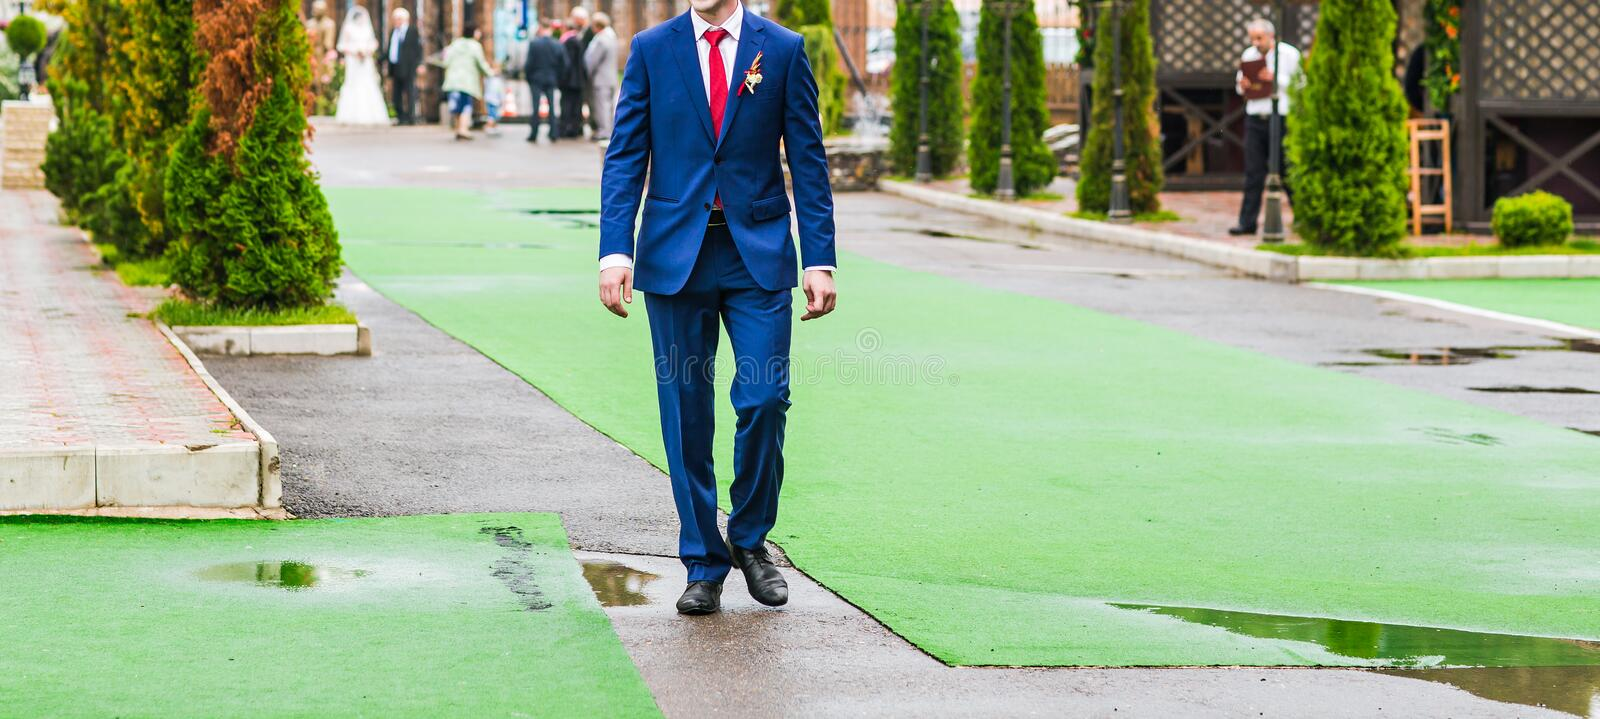 Groom in blue suit is on the green track at. Joyful happy groom in blue suit is on the green track at wedding ceremony stock images